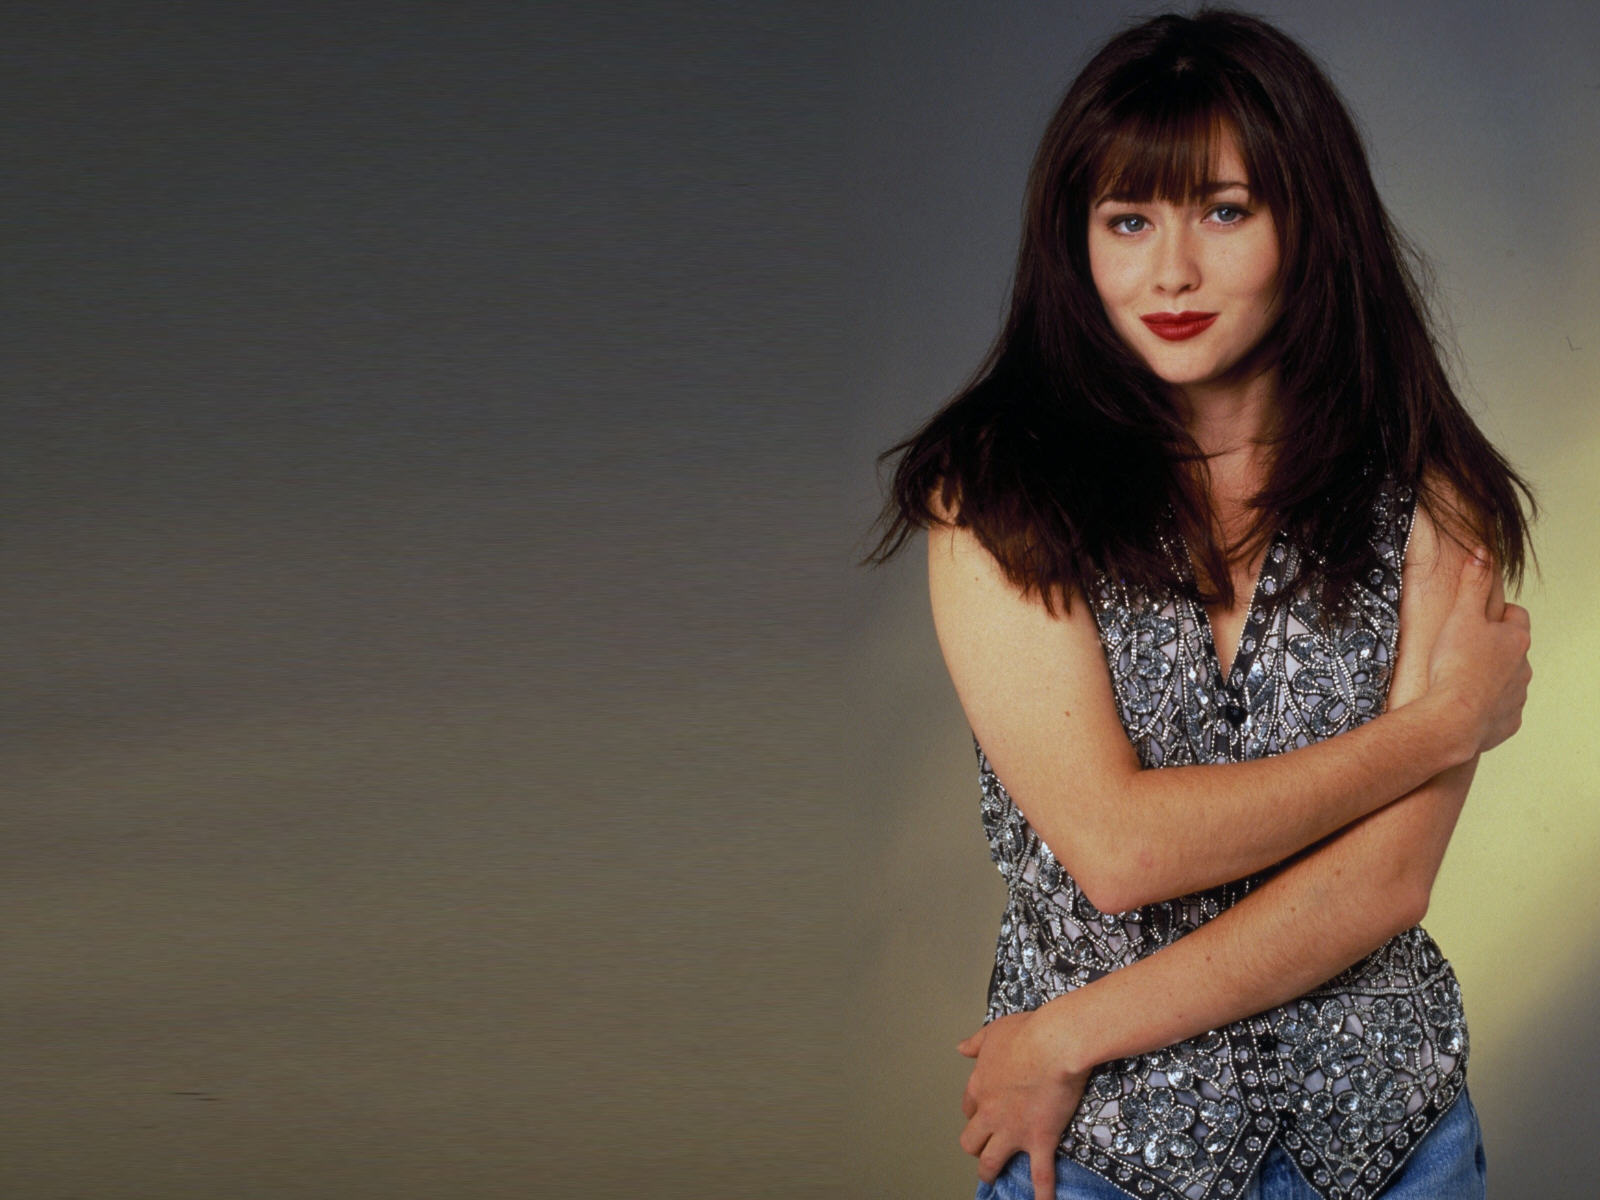 1600x1200 - Shannen Doherty Wallpapers 9